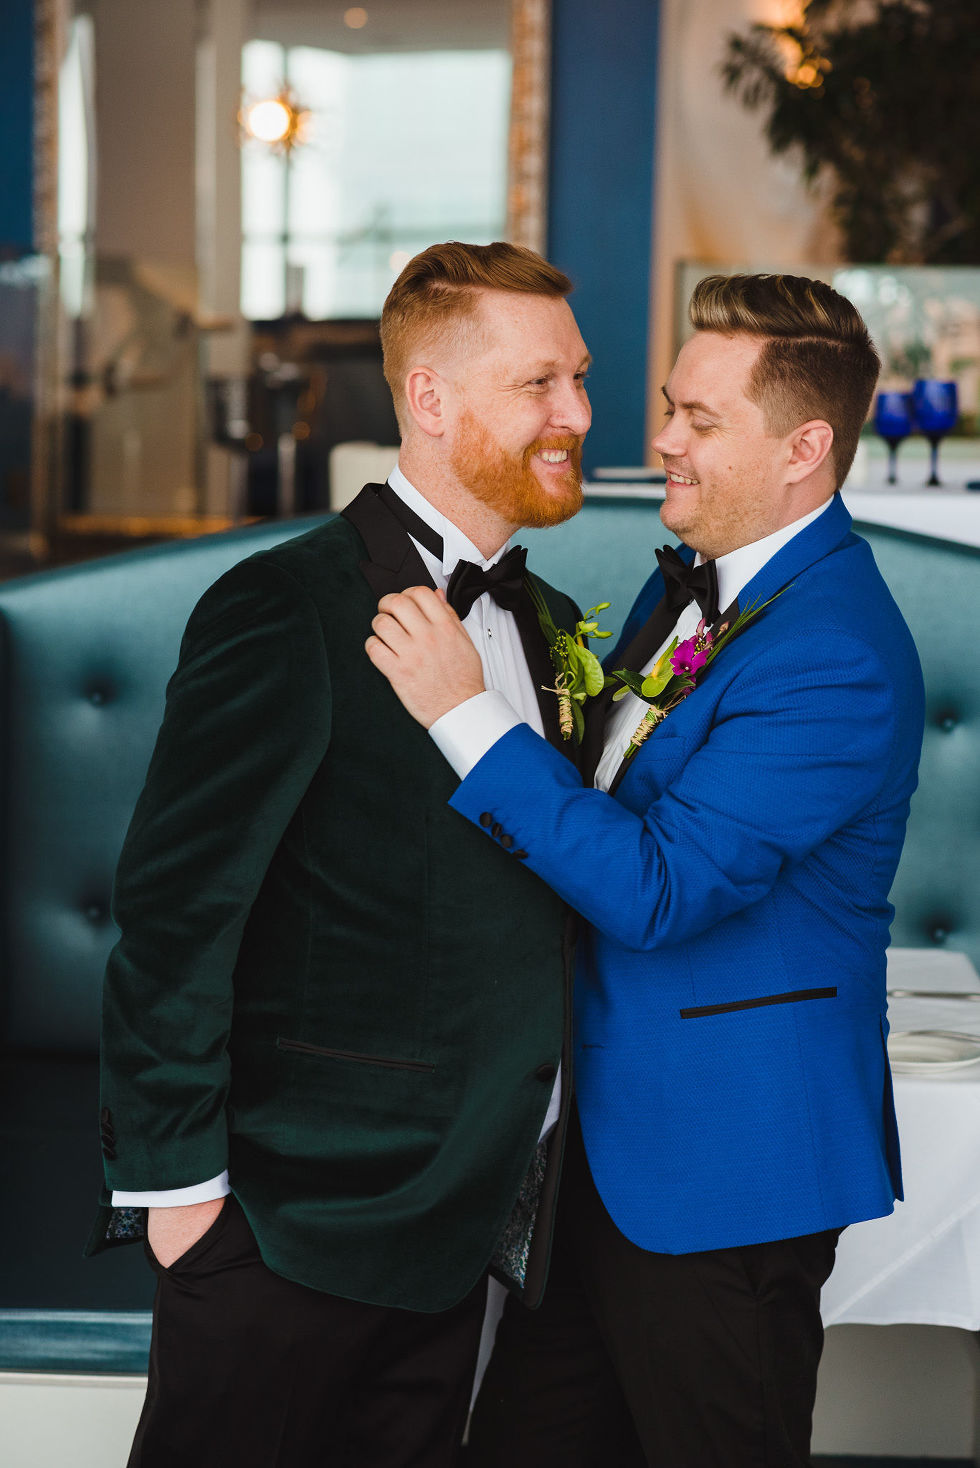 groom in bright blue suit brushing off the shoulder of his groom in a green suit before their wedding at the Hilton in Niagara Falls